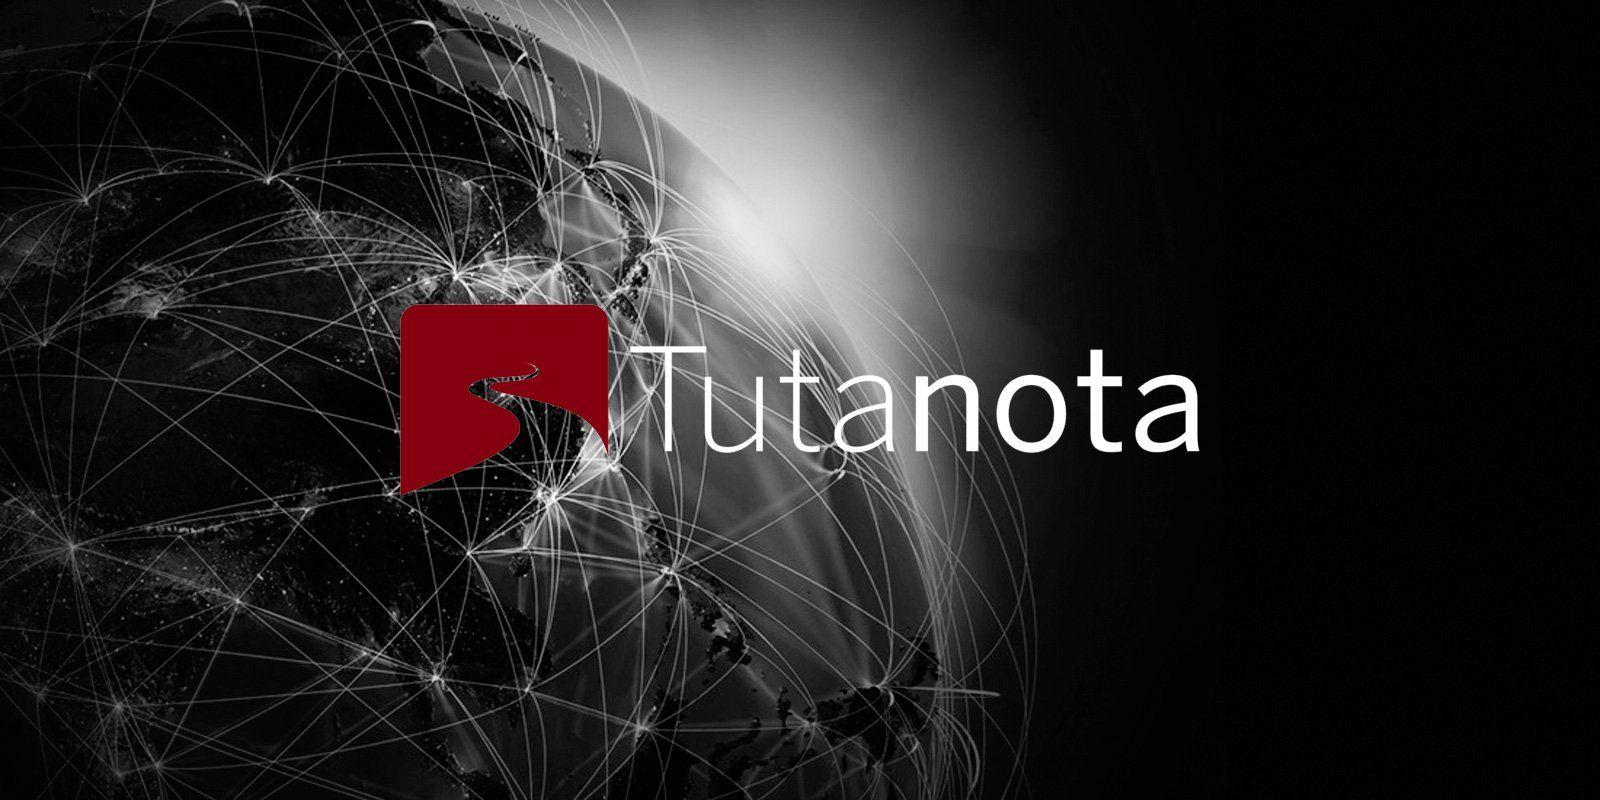 The Trouble with Tutanota